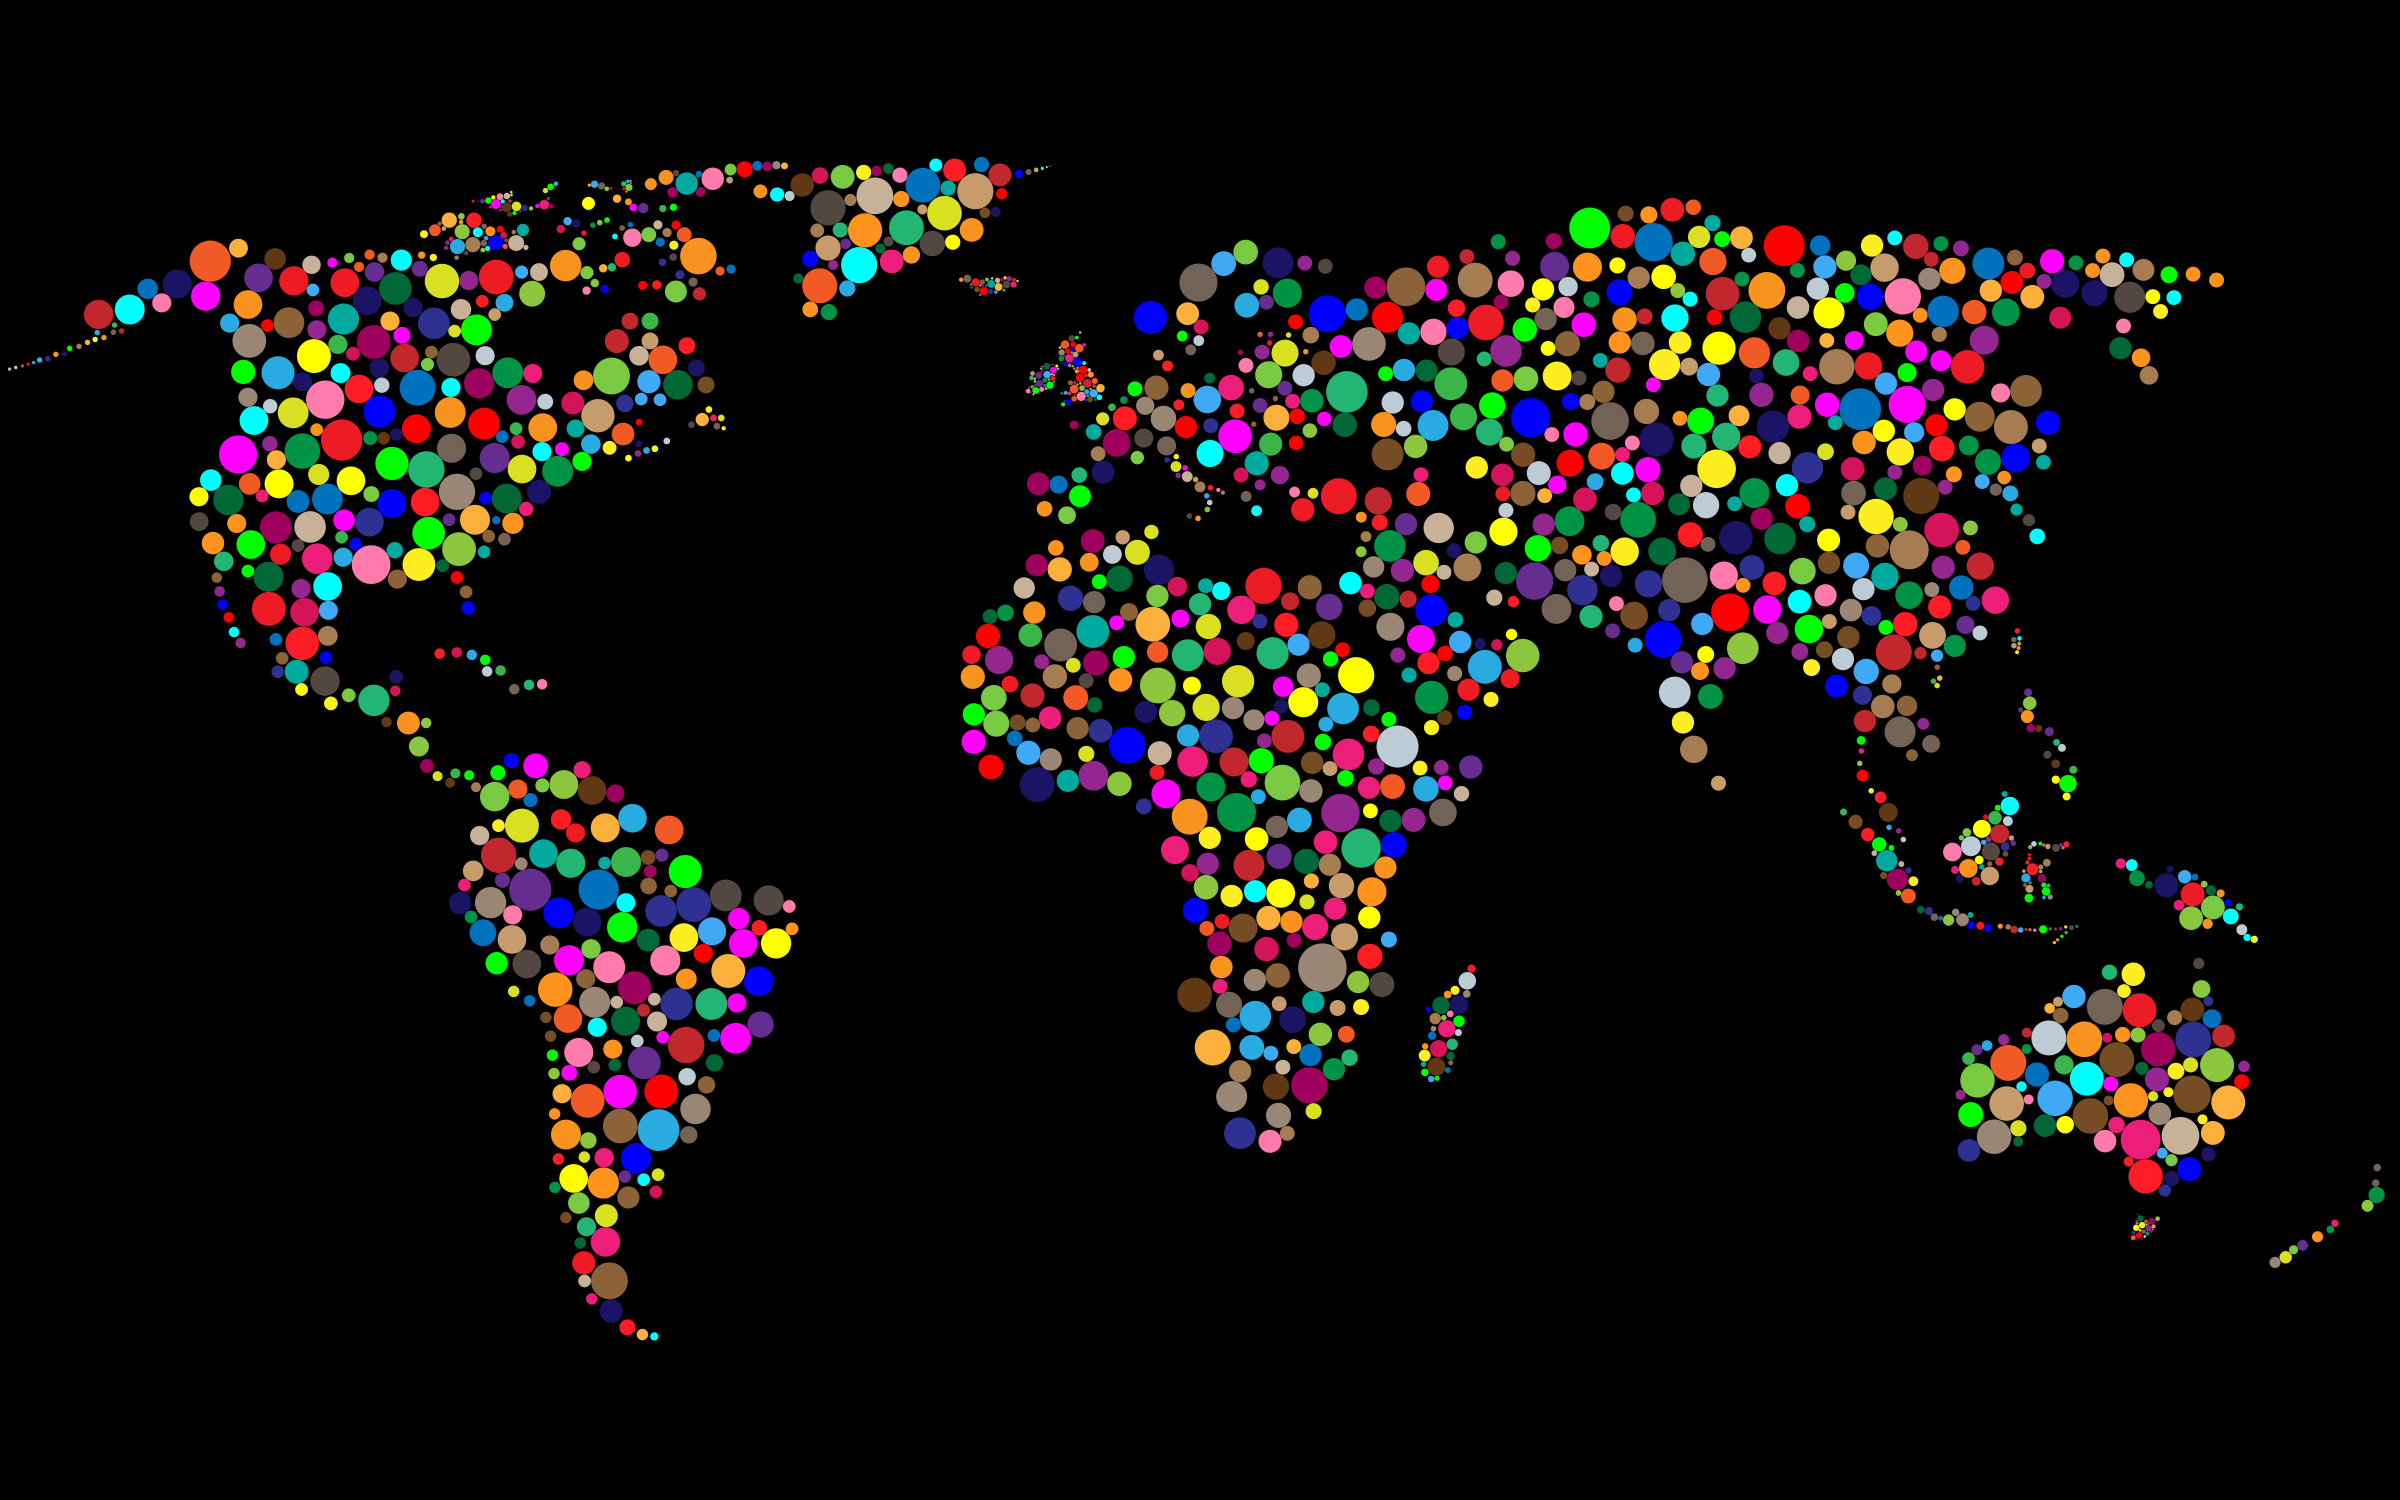 Colorful Circles World Map With Background 5 by GDJ